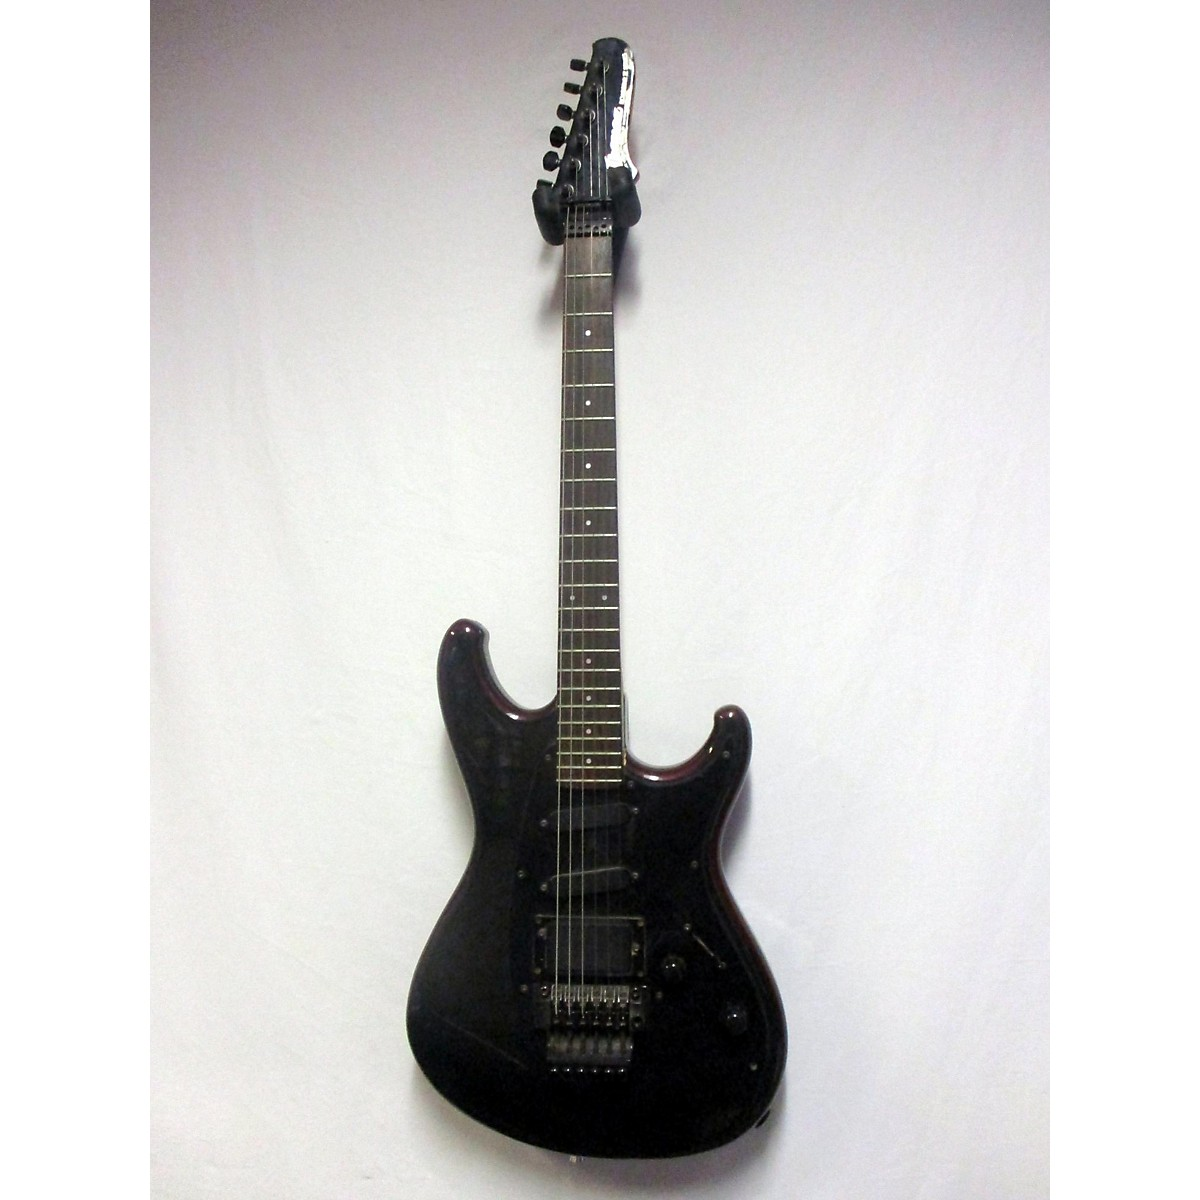 Ibanez 1980s RG440 Solid Body Electric Guitar